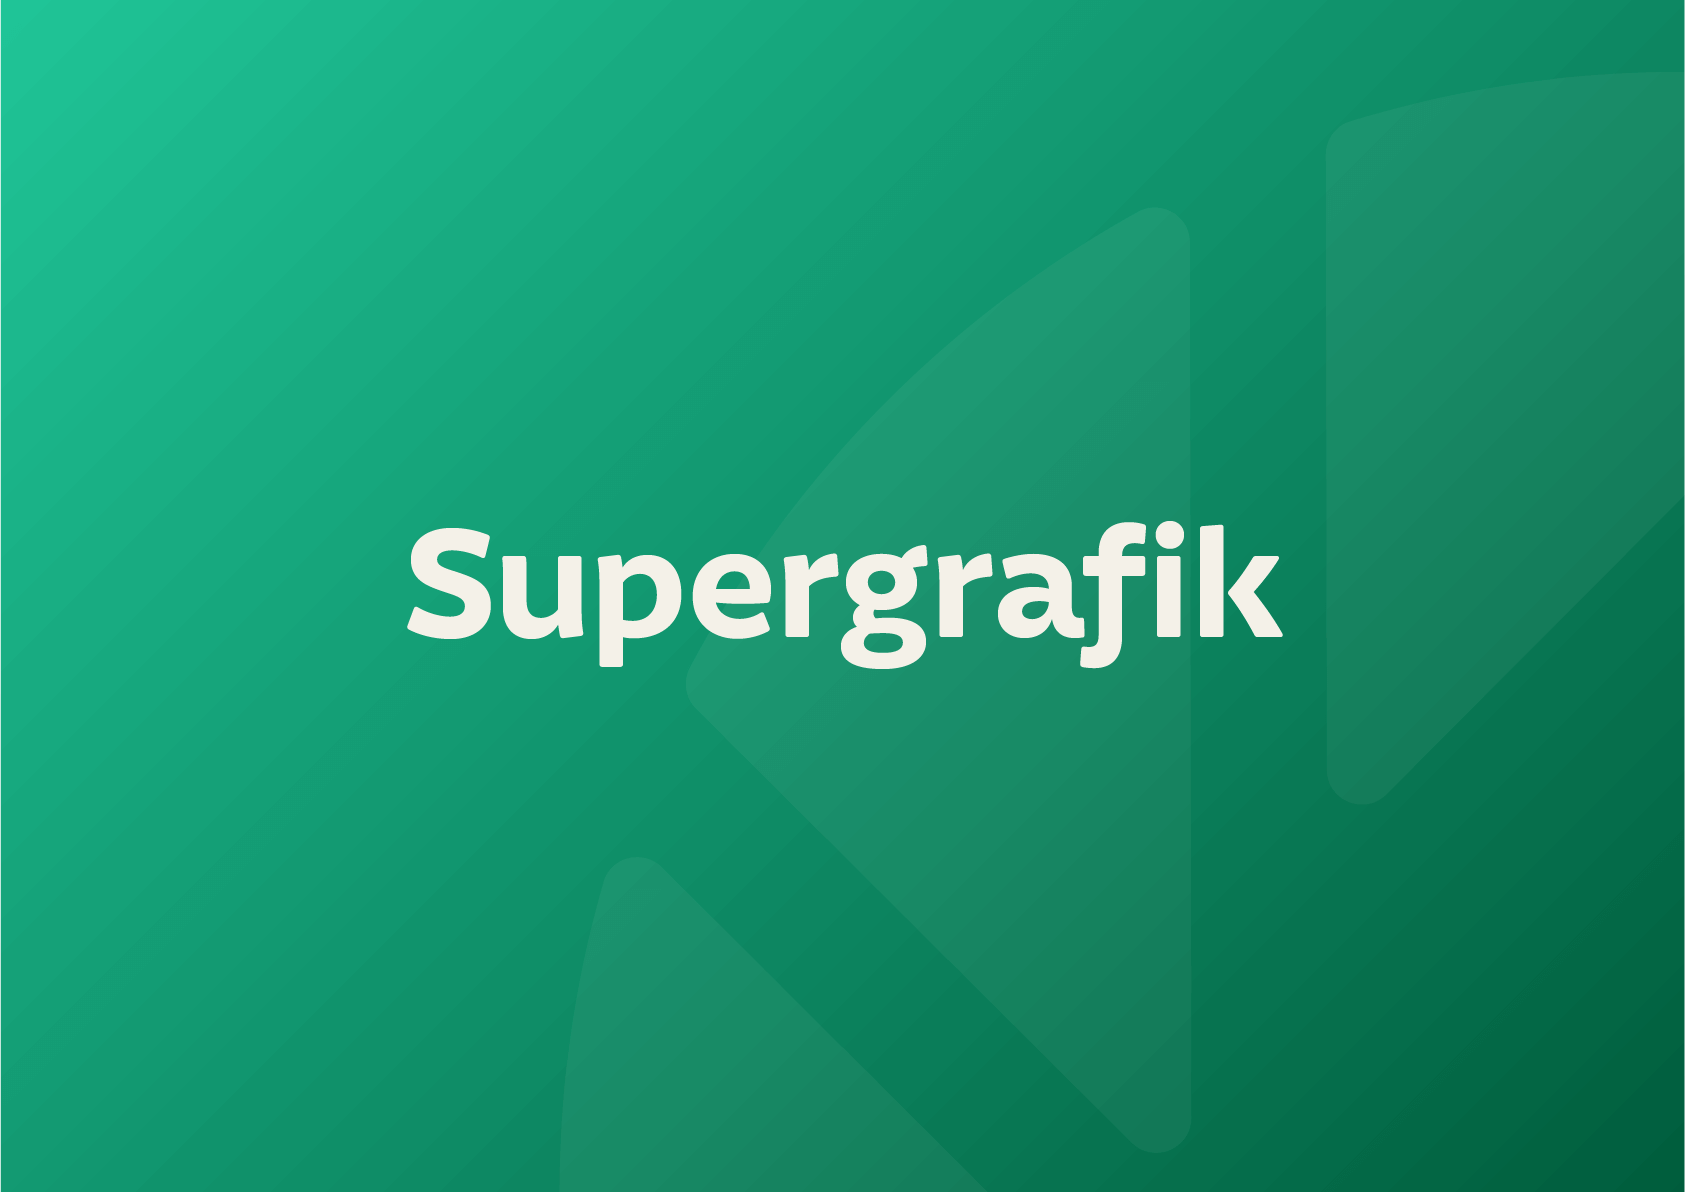 illustrationsstil supergrafik